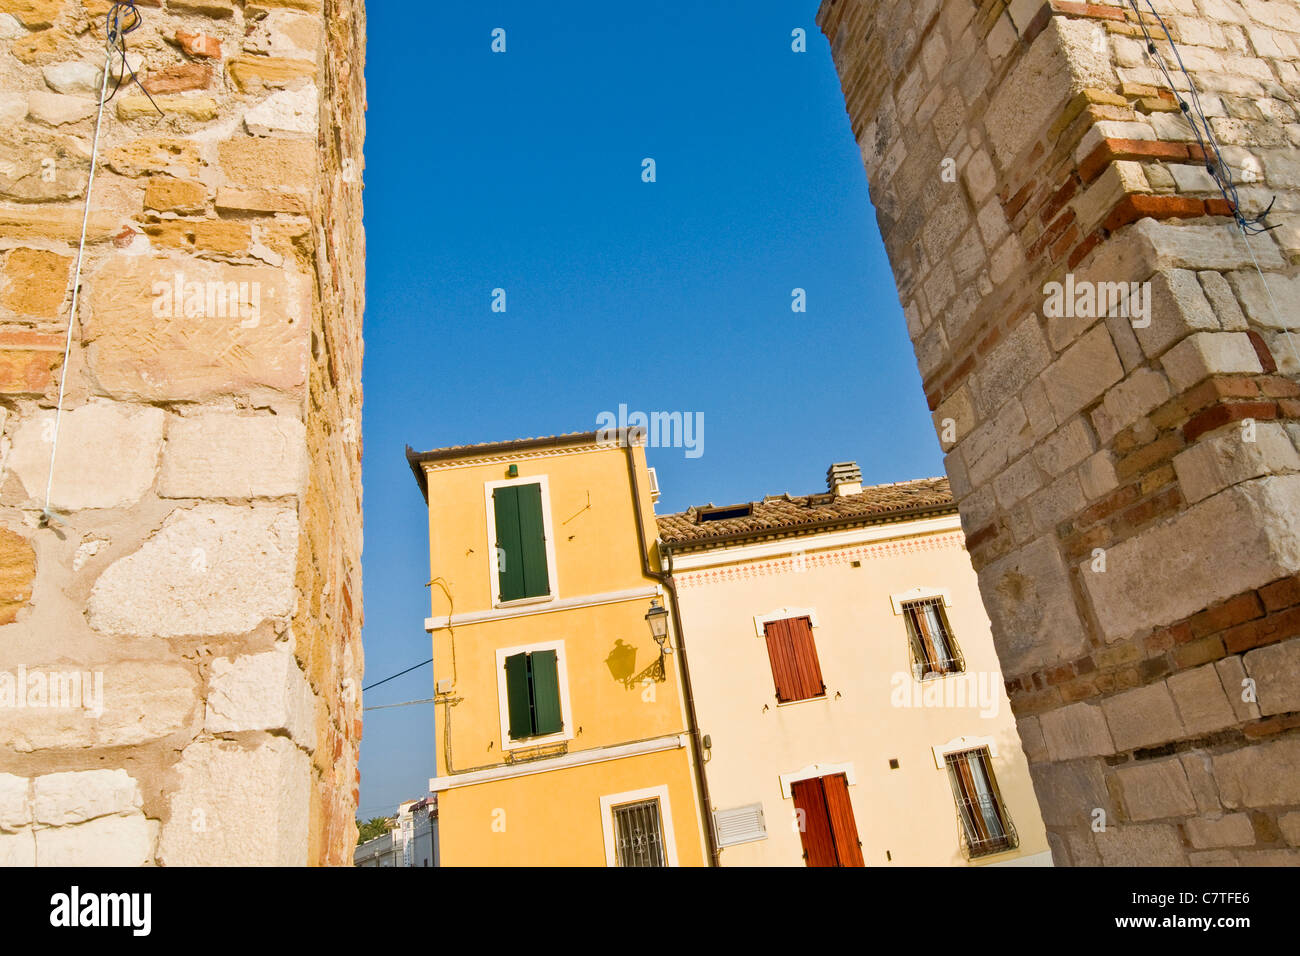 Italy, Marche, Numana, the twon center - Stock Image